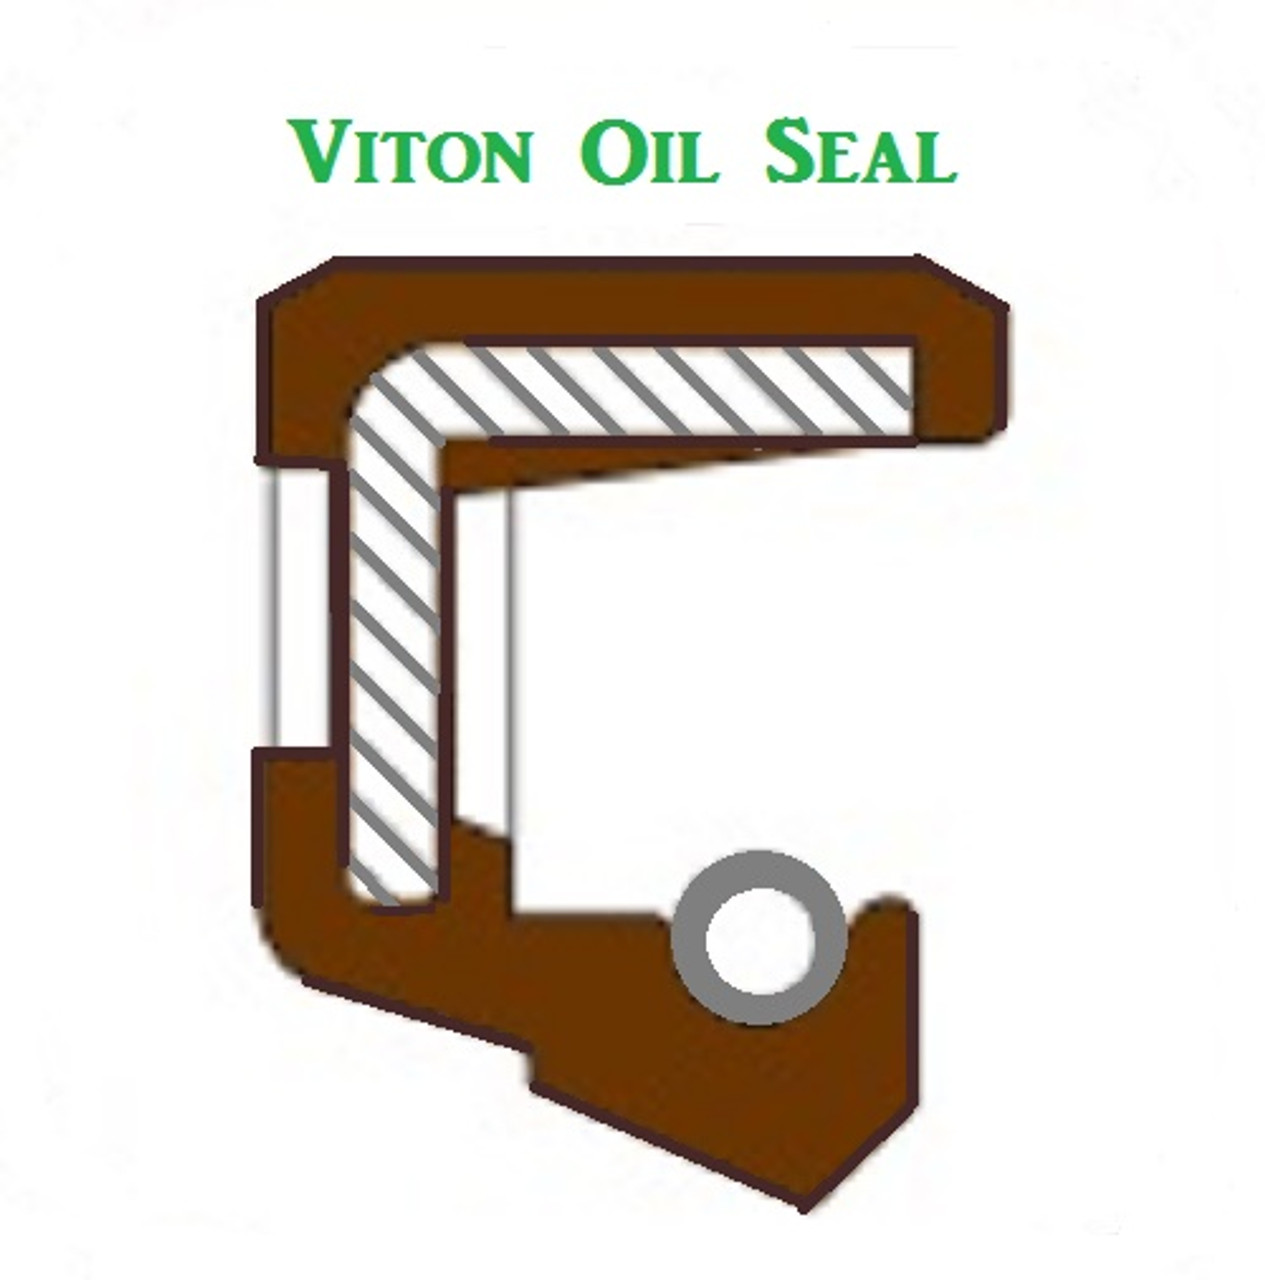 Viton Oil Shaft Seal 50 x 72 x 10mm  Price for 1 pc